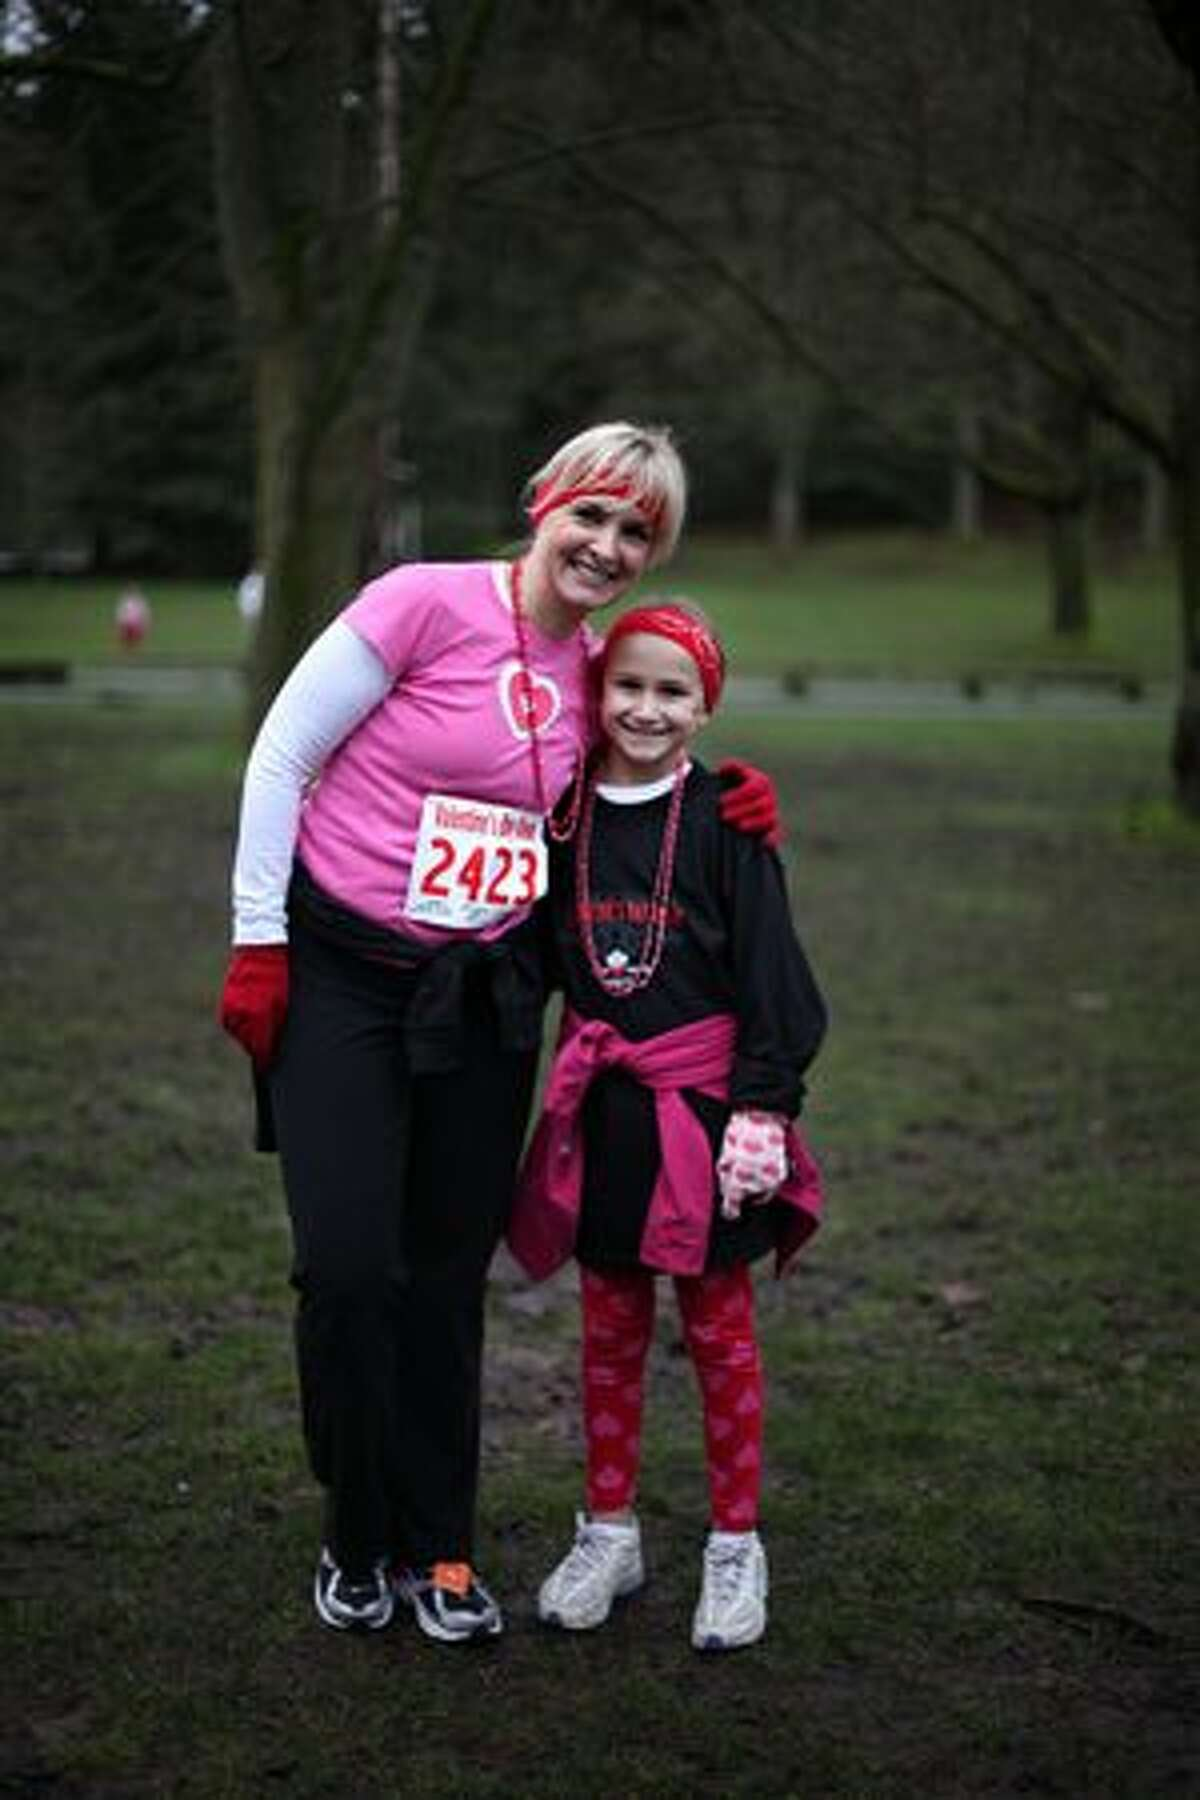 Linda Rackner is pictured with her daughter, Gabrielle, 9, at the Love 'Em or Leave 'Em Valentine's Day Dash in Green Lake on Saturday morning. The 5K run and walk drew approximately 3,000 participants, according to organizers. (David Ryder/seattlepi.com)